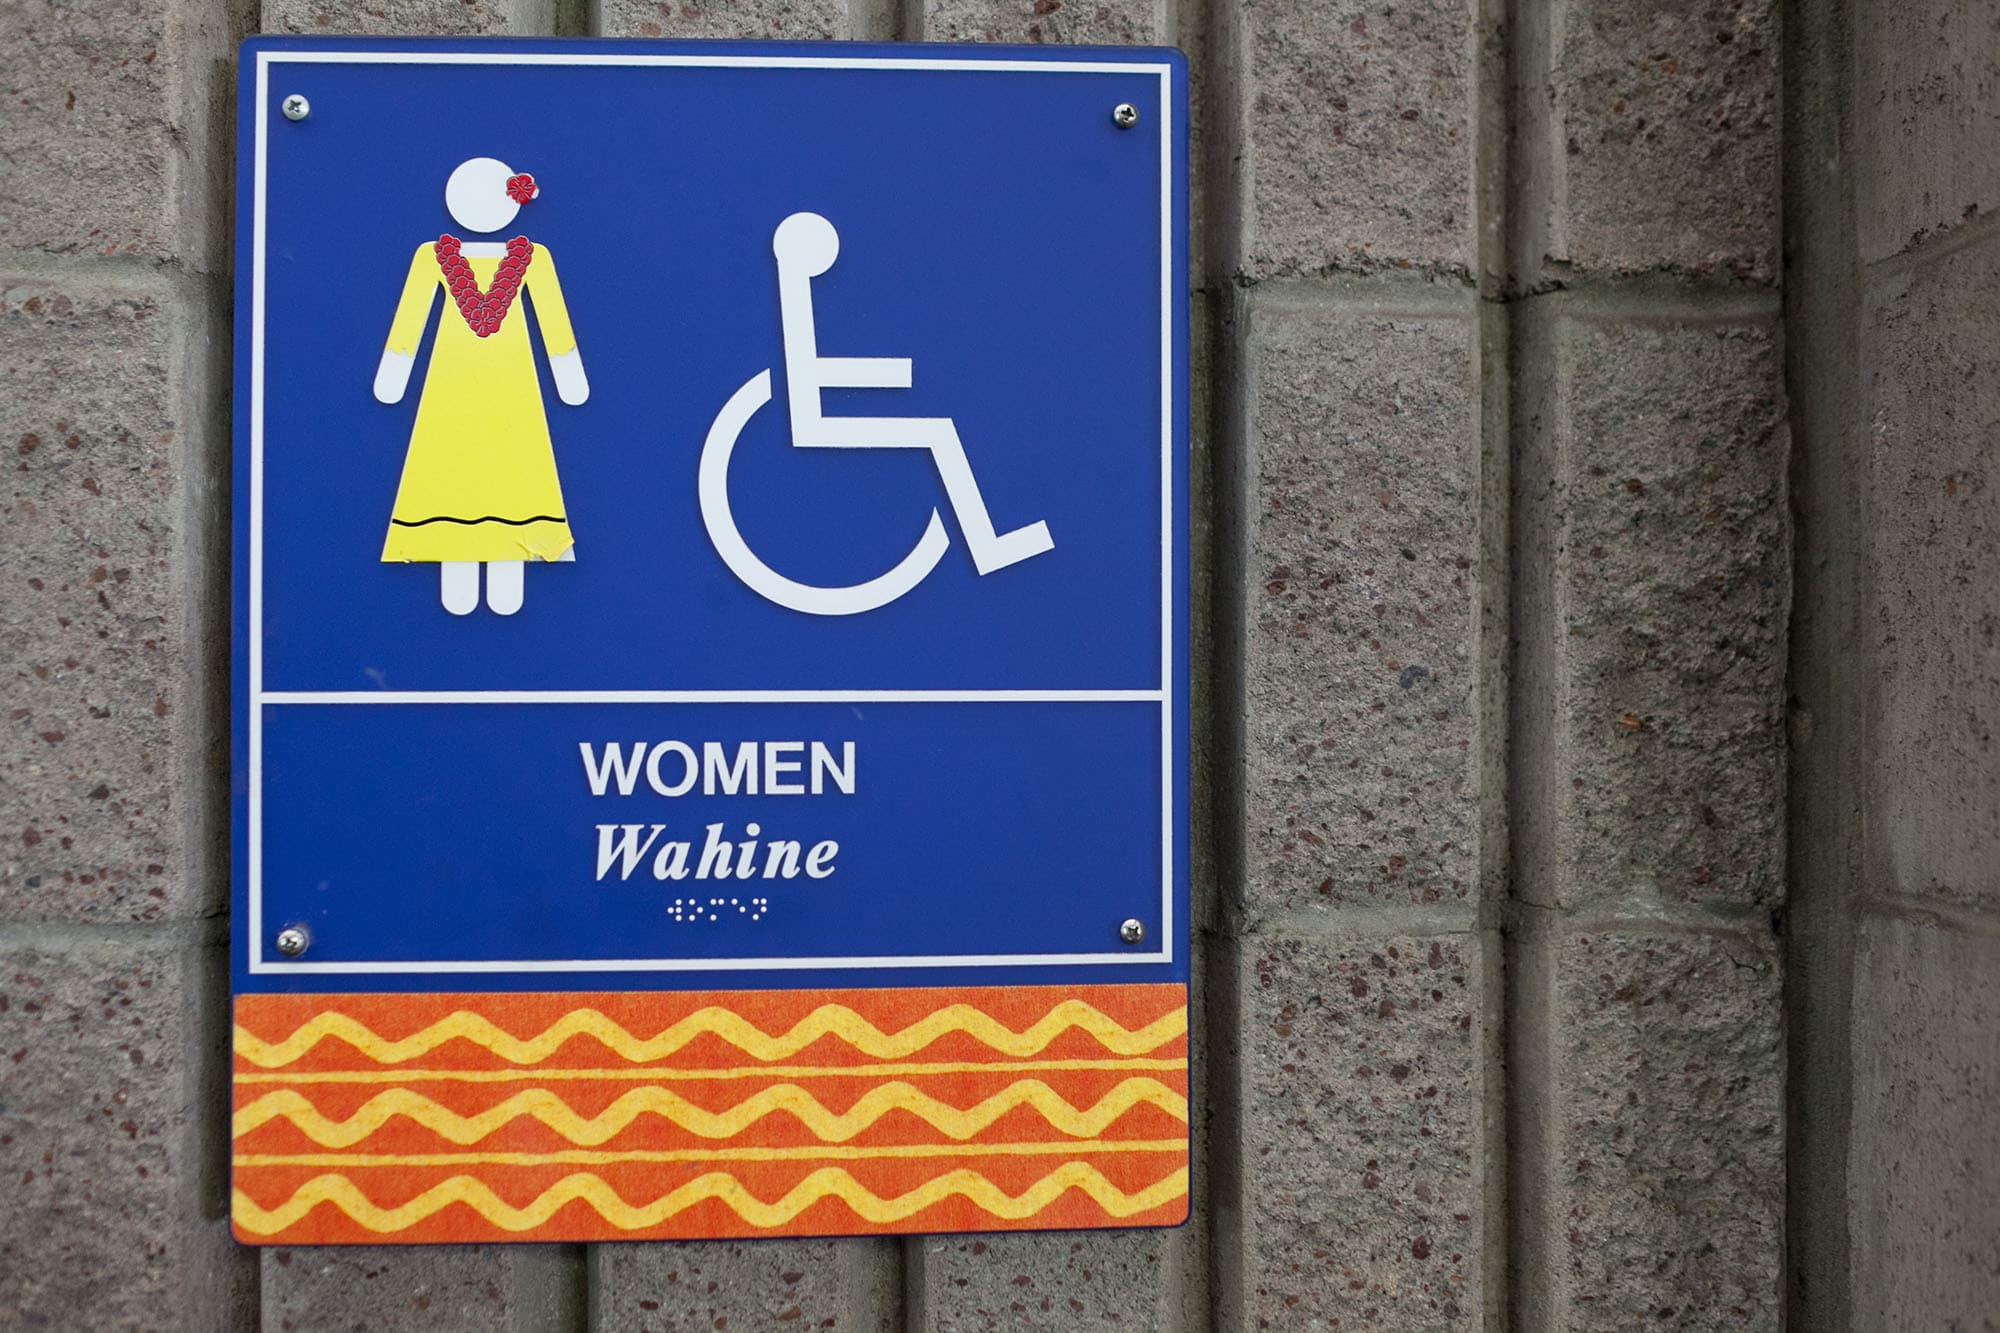 Wahine - women's bathroom sign at the airport in Hawaii